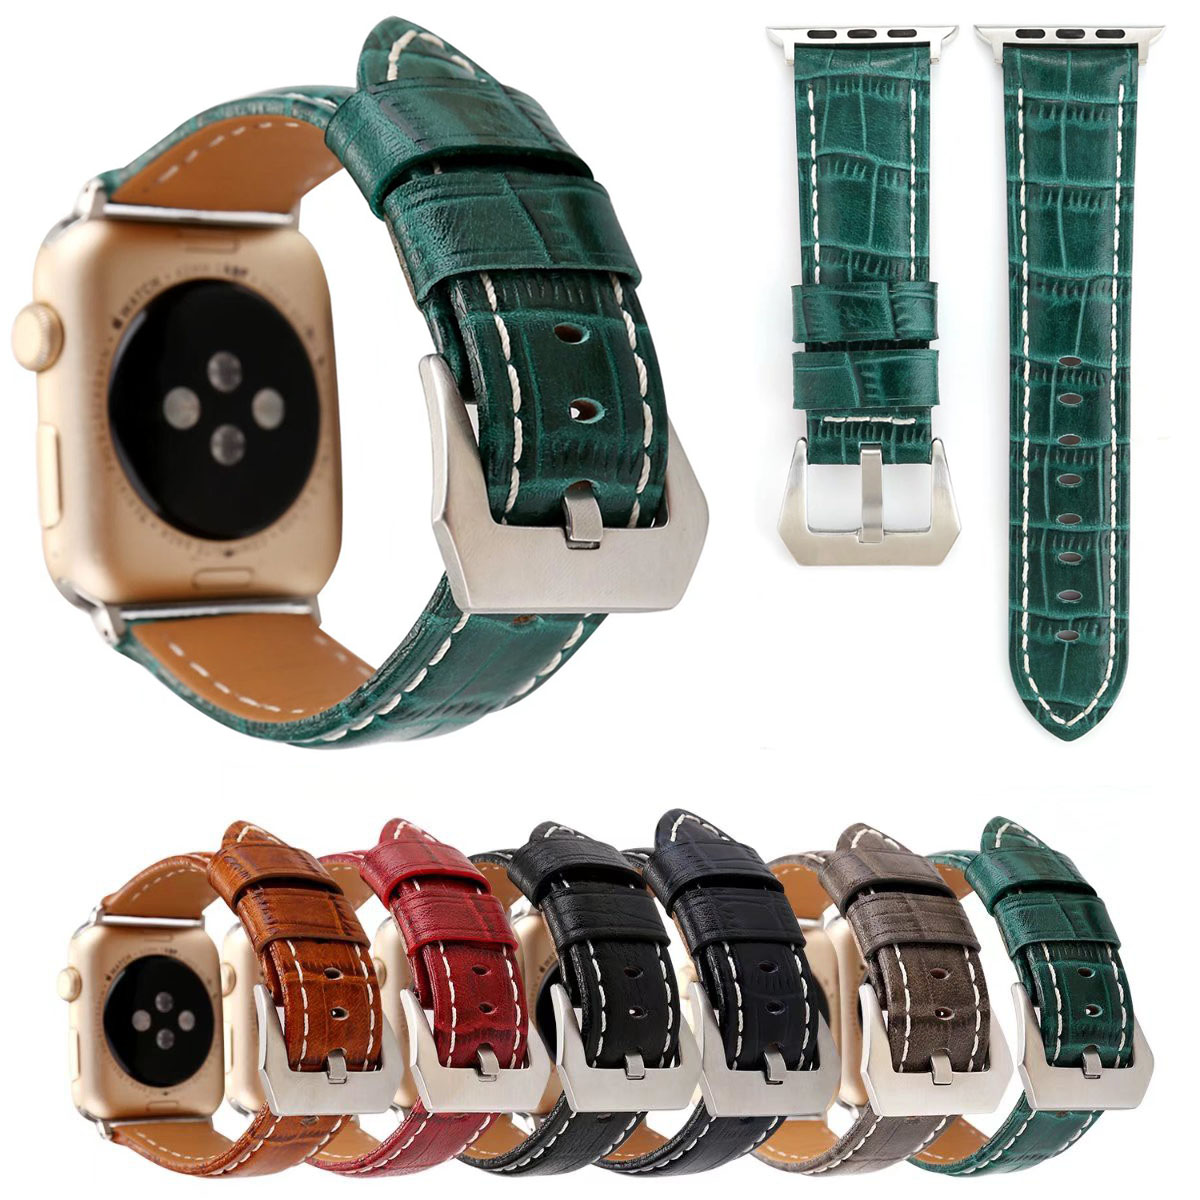 Retro Style Crocodile Real Leather Band for Apple Watch iWatch Series 1/2/3 Strap 42mm 38mm Genuine Leather Wristband Accessory band for apple watch 38mm 42mm character modeling style genuine leather strap for iwatch series 1 2 3 strap gift for iphone case